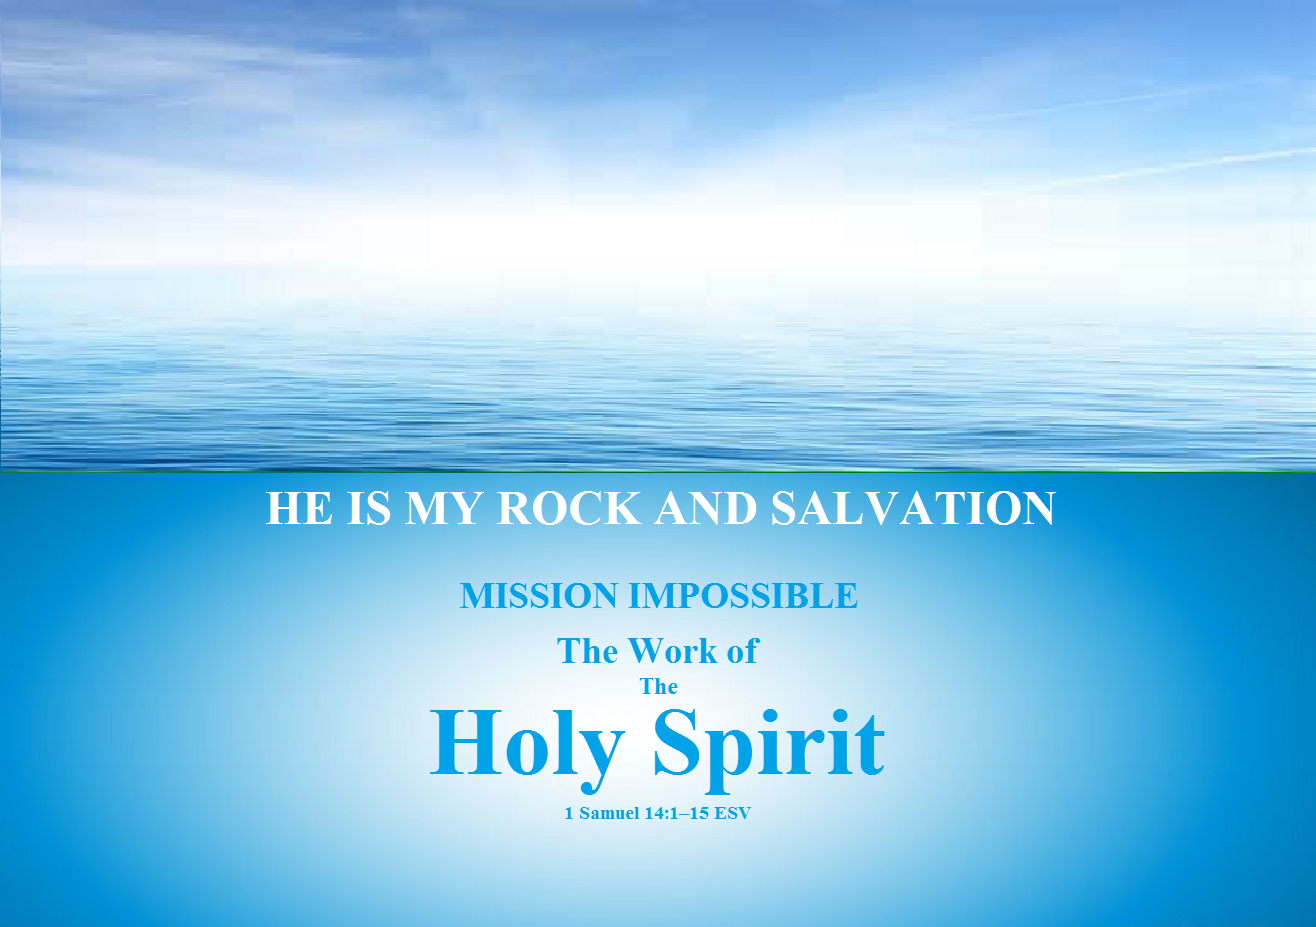 Biblical inspiration 1 he is my rock and salvation mission biblical inspiration 1 he is my rock and salvation mission impossible the work of the holy spirit the moody church thecheapjerseys Gallery